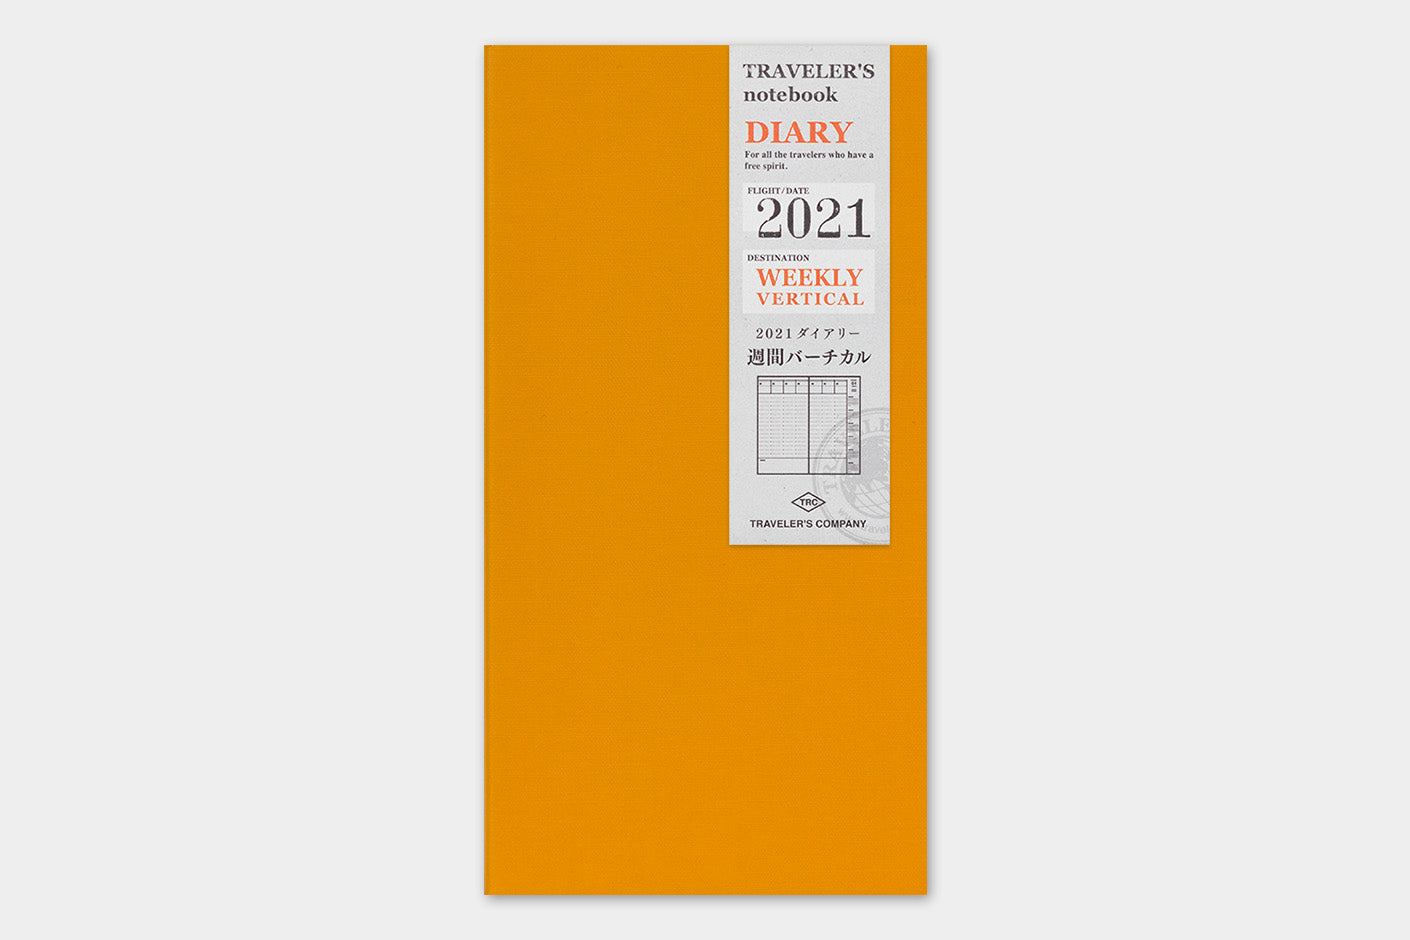 Traveler's Notebook Diary (Regular Size) - 2021 Weekly Vertical PRE-ORDER.